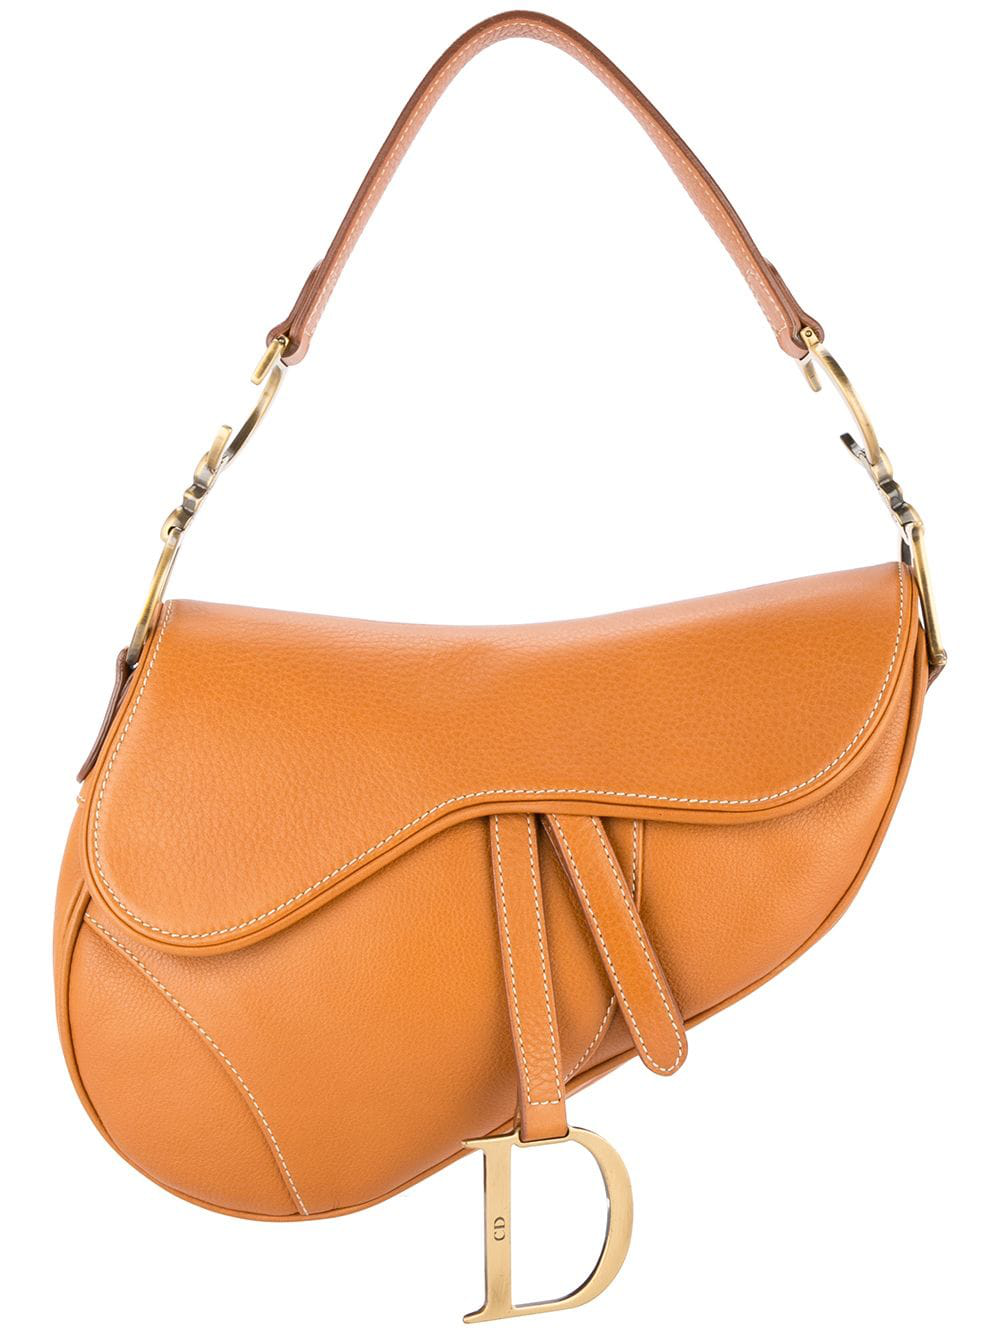 b8d0a80e4eef Dior Saddle Bag In Brown